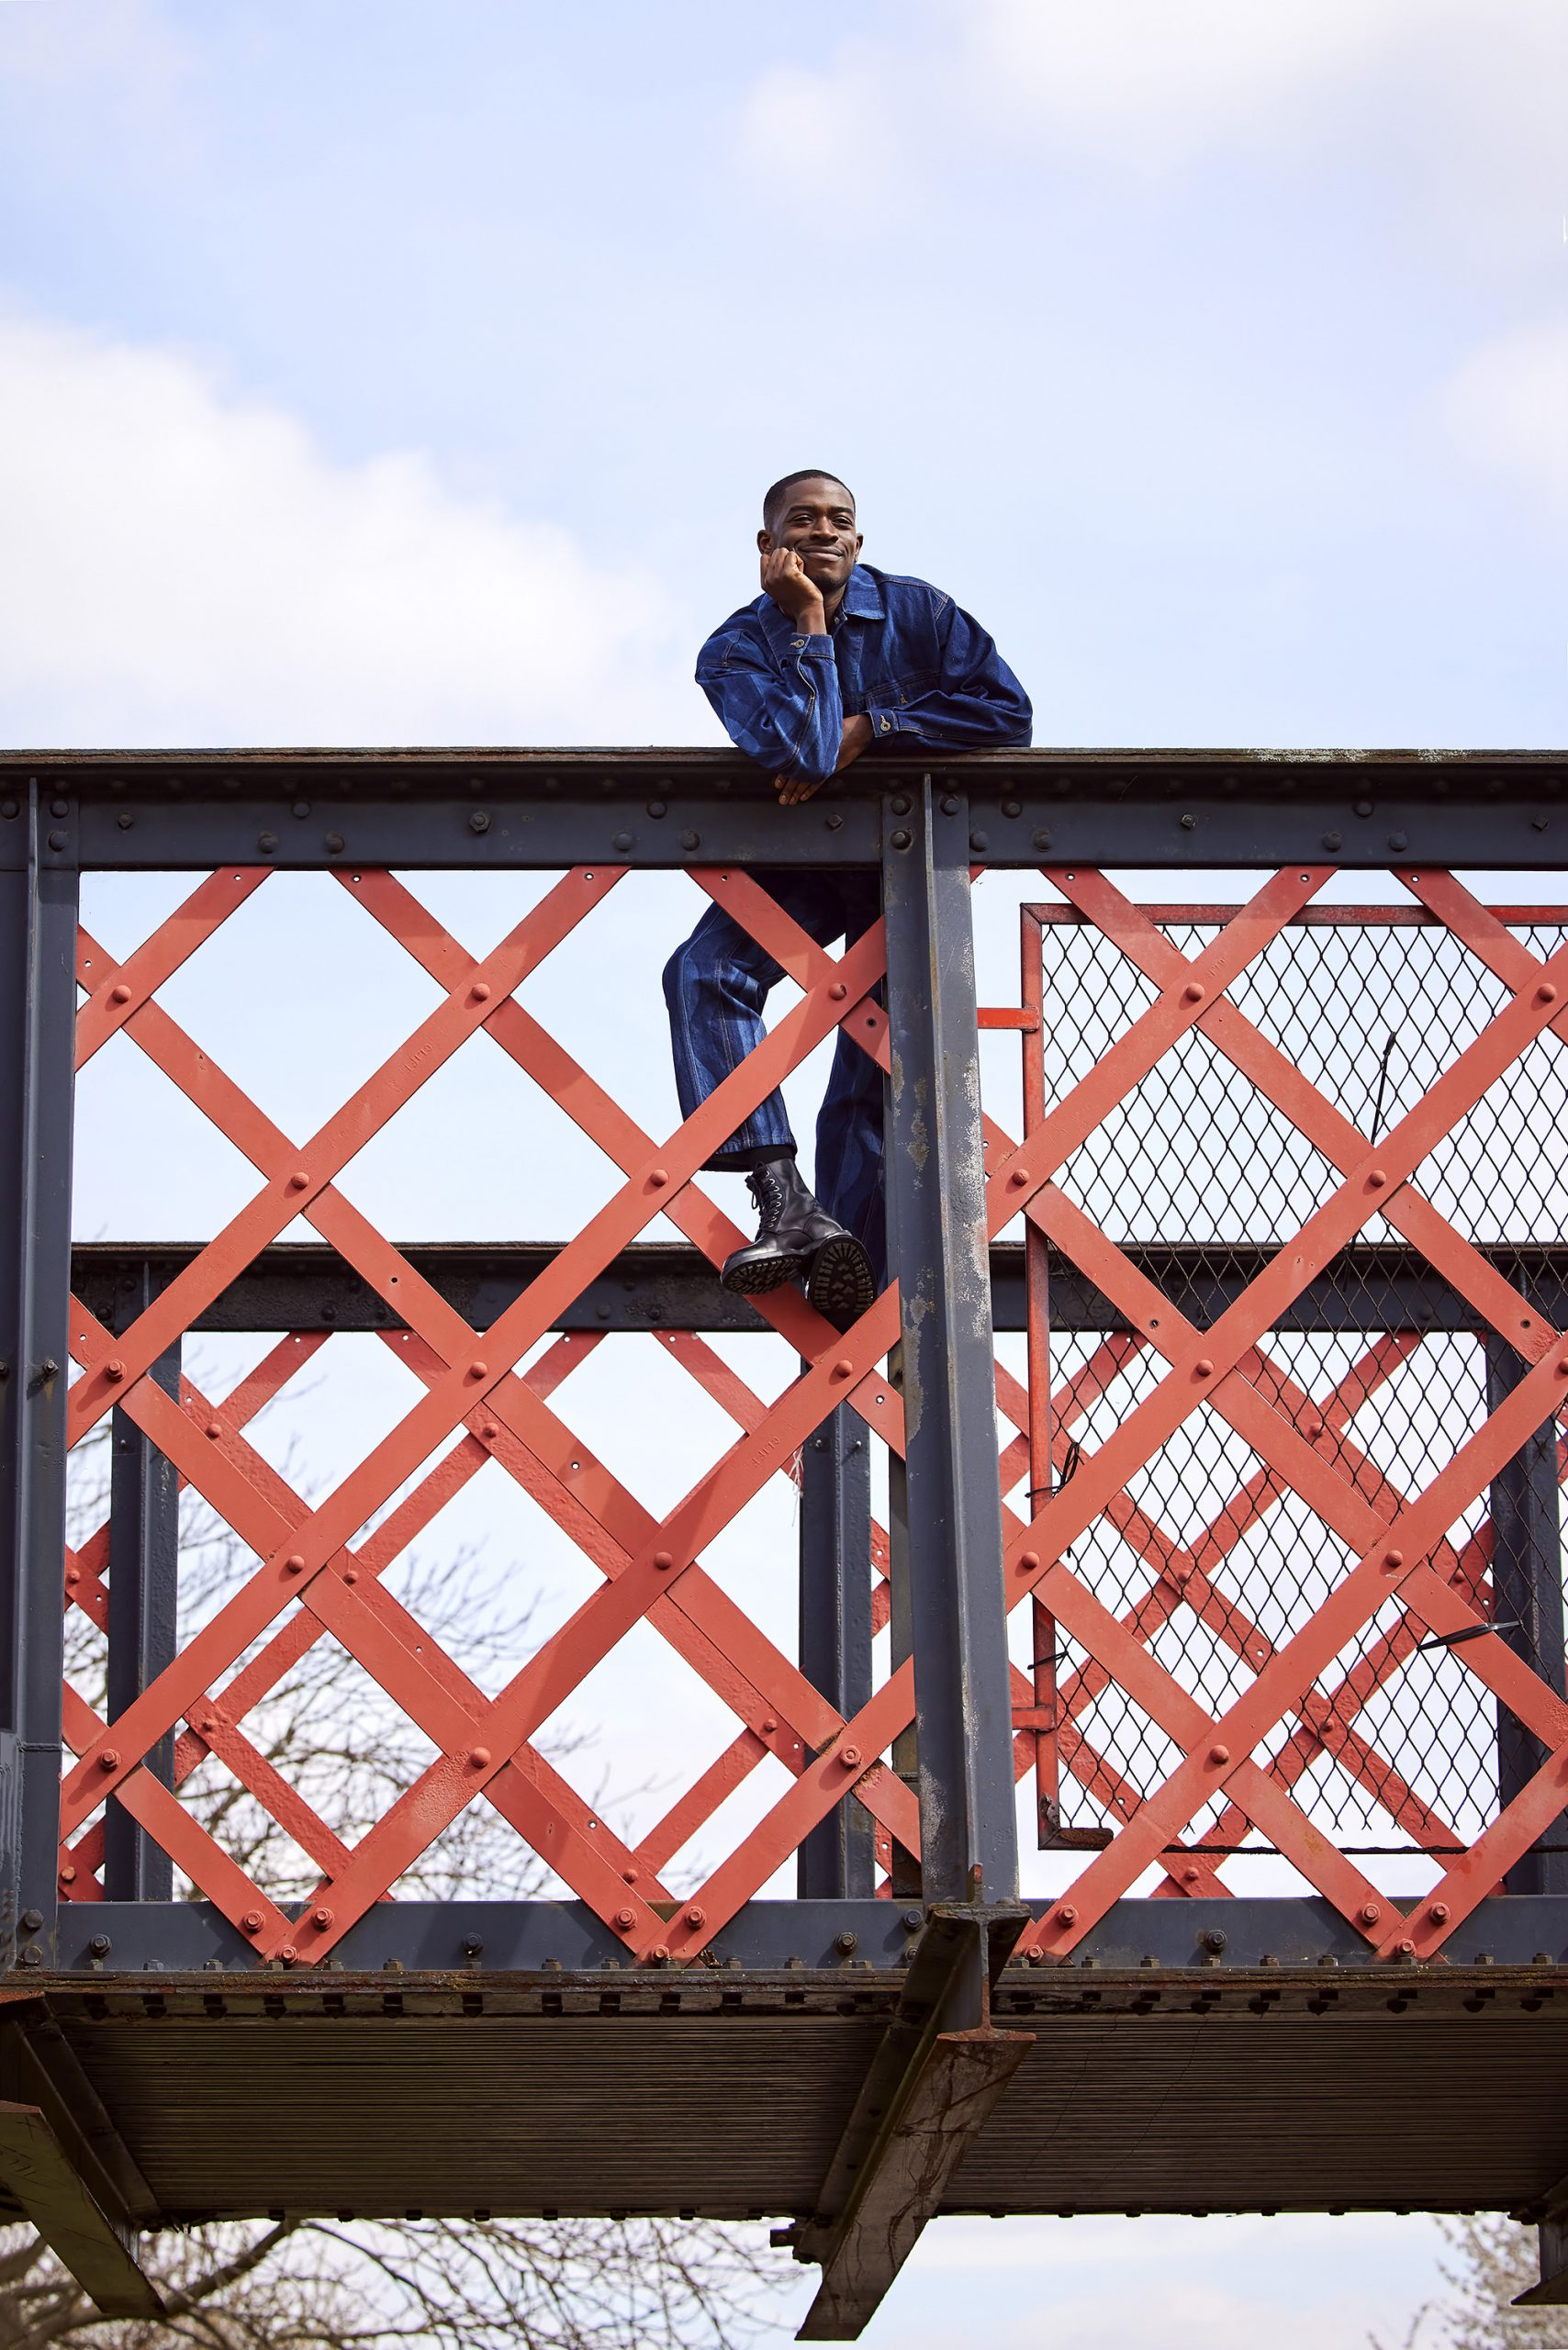 Damson Idris climbing up the metal railings on a bridge with his chin on his hand, smiling